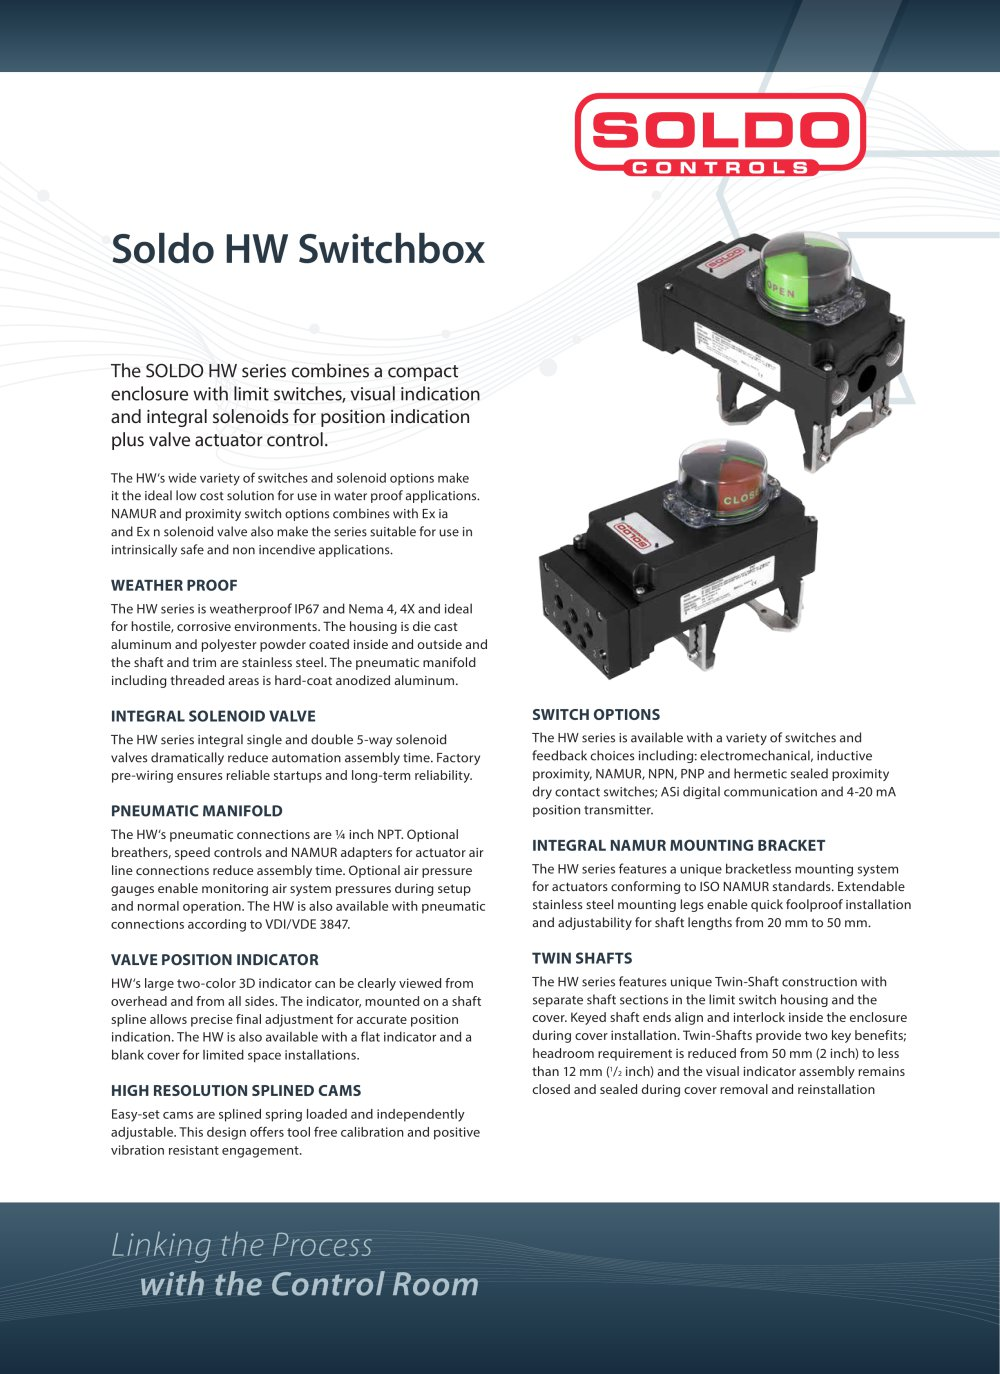 Soldo Hw Series Rotork Instruments Fairchild Industrial Products Solenoid Water Valve Wiring Diagram Get Free Image About 1 6 Pages